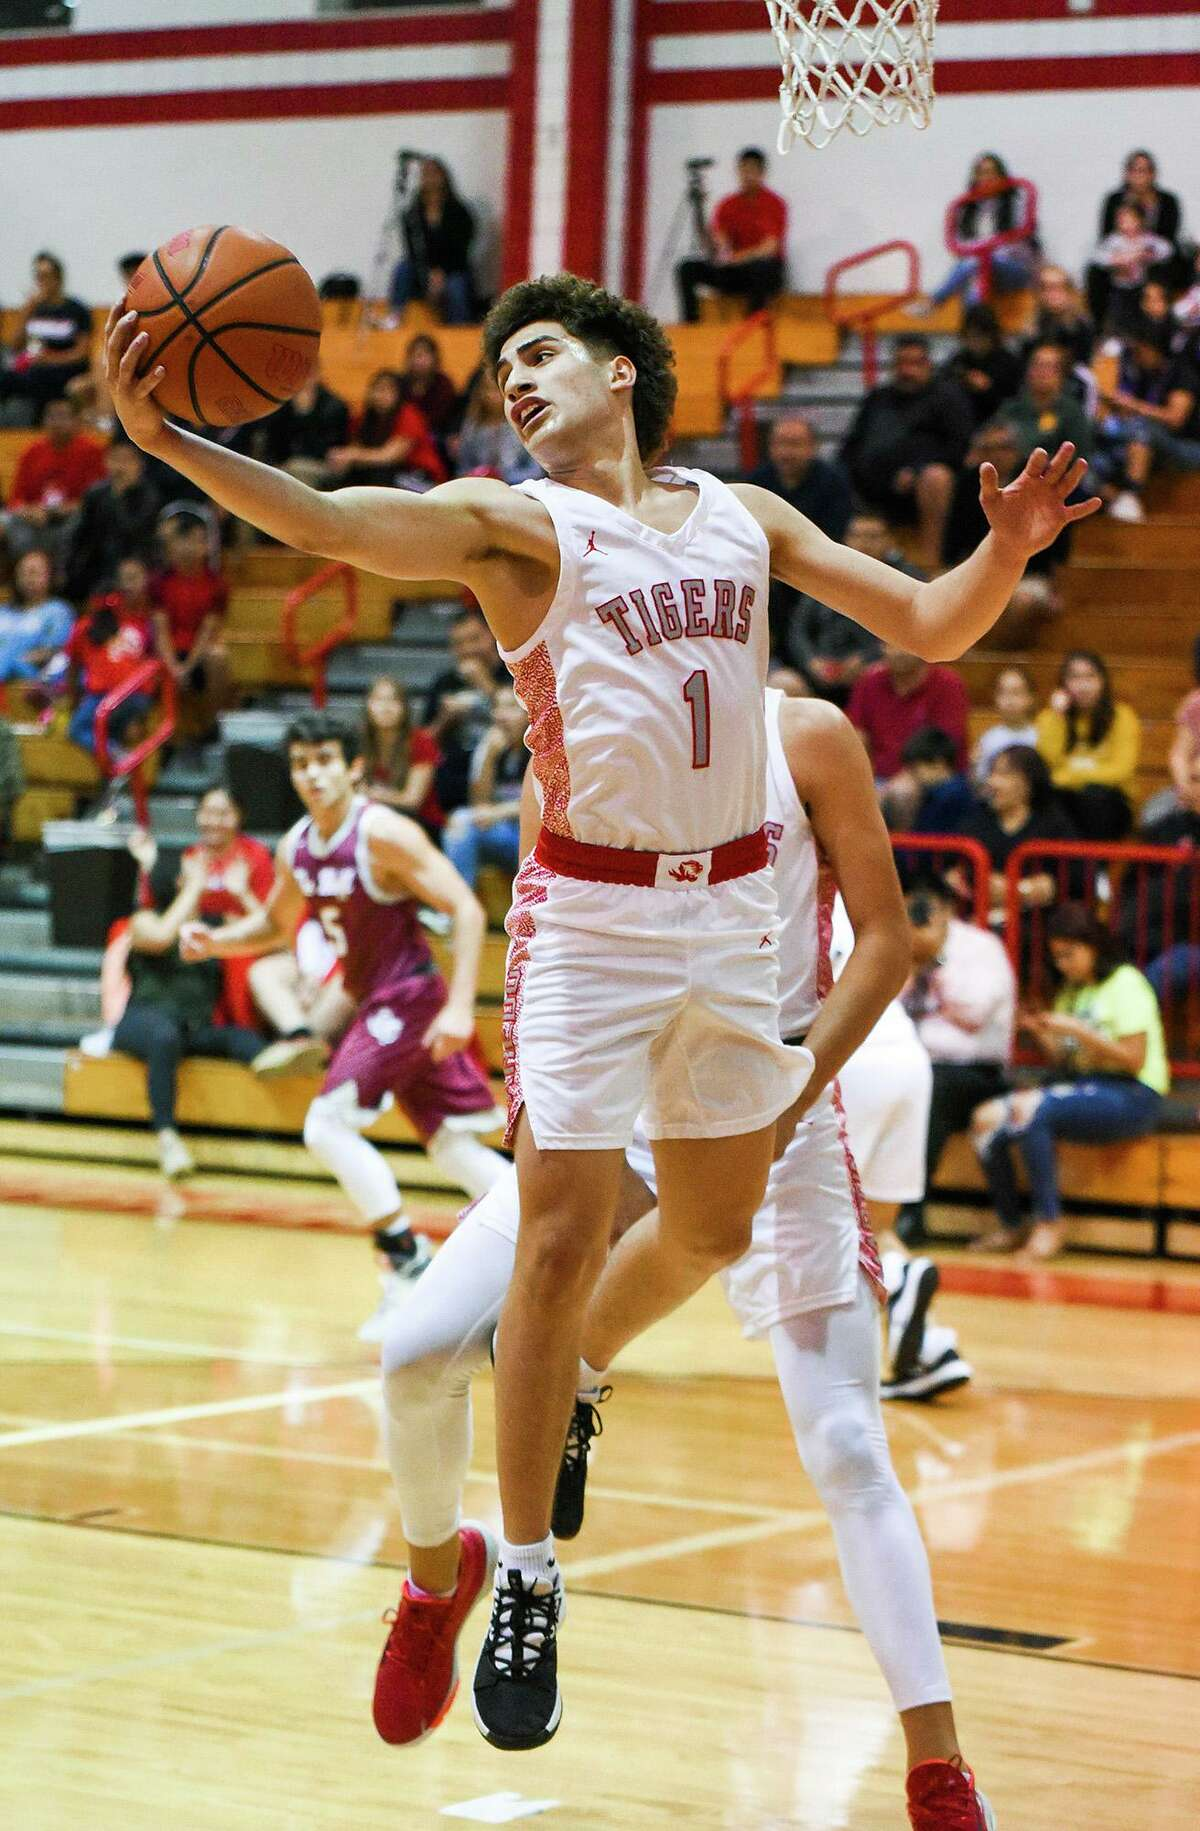 Chris Martinez and the Martin Tigers open their season against LBJ on Tuesday.